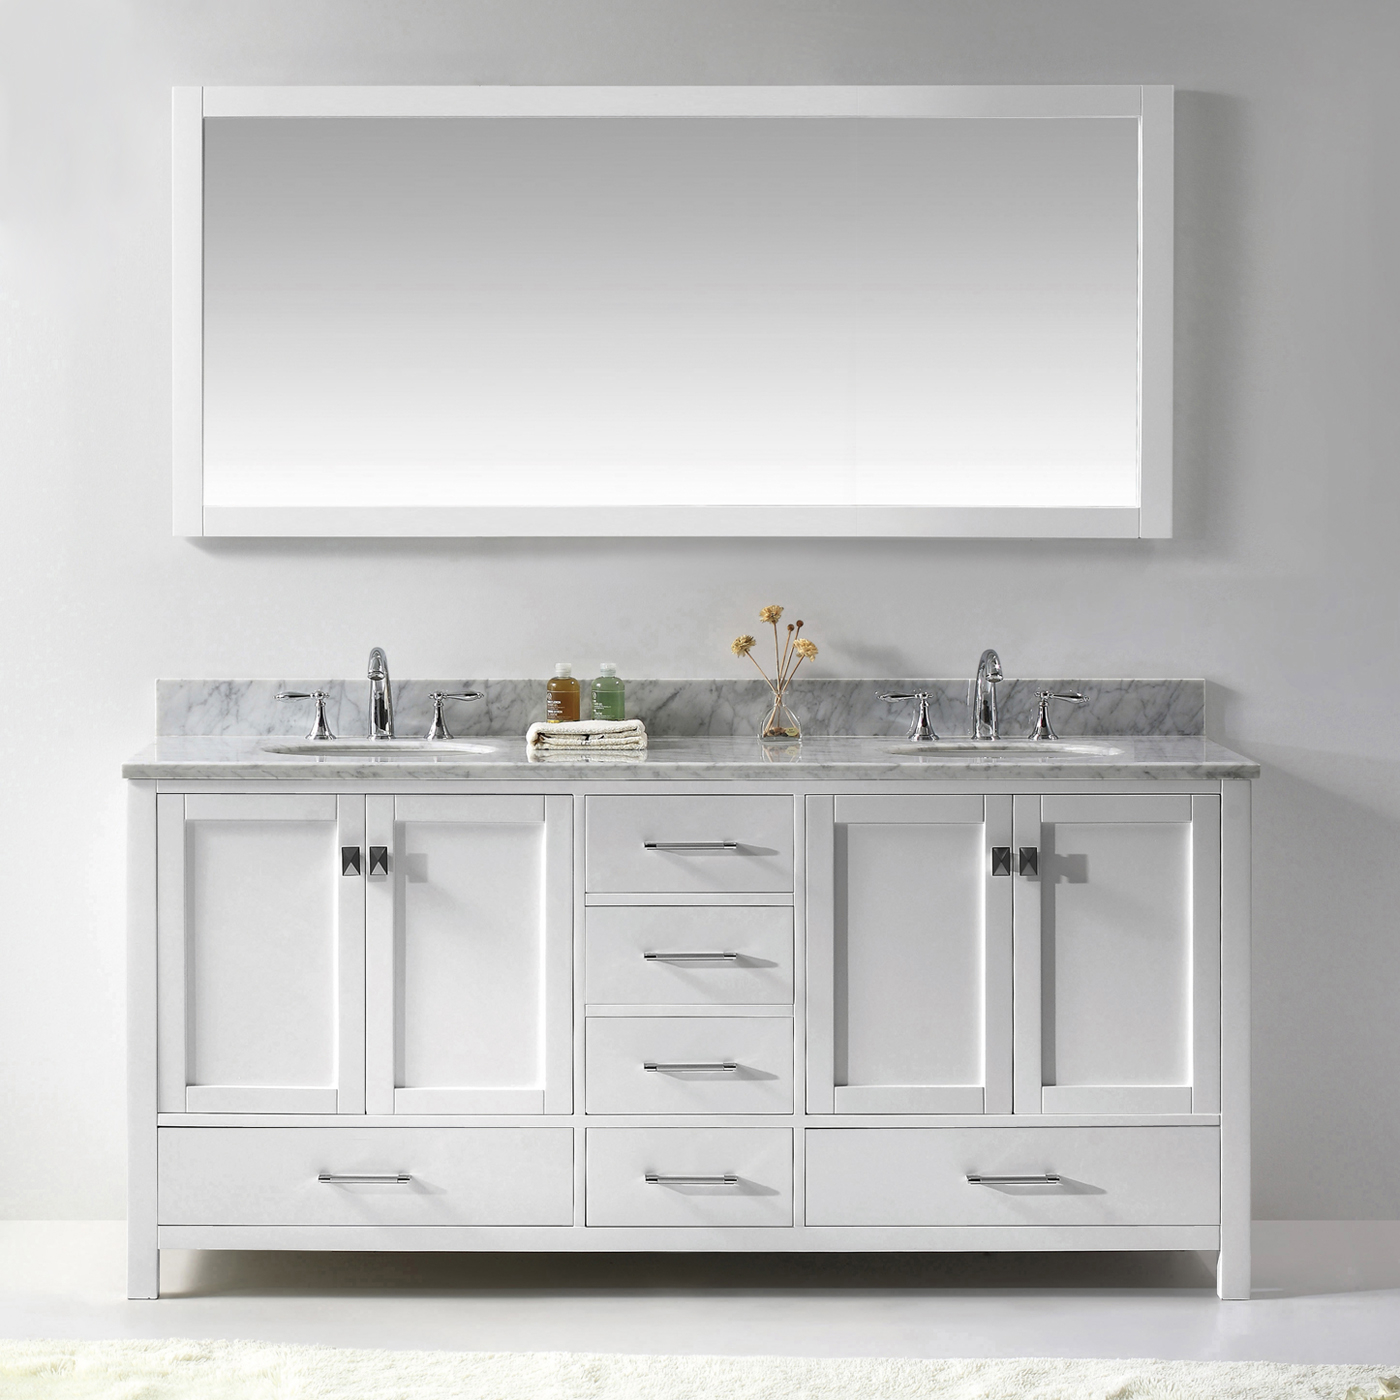 Modern Sink : Sink Winsome Bathroom Vanity Double Picture Ideas Inch White inside Bathroom Vanities Double Sink 72